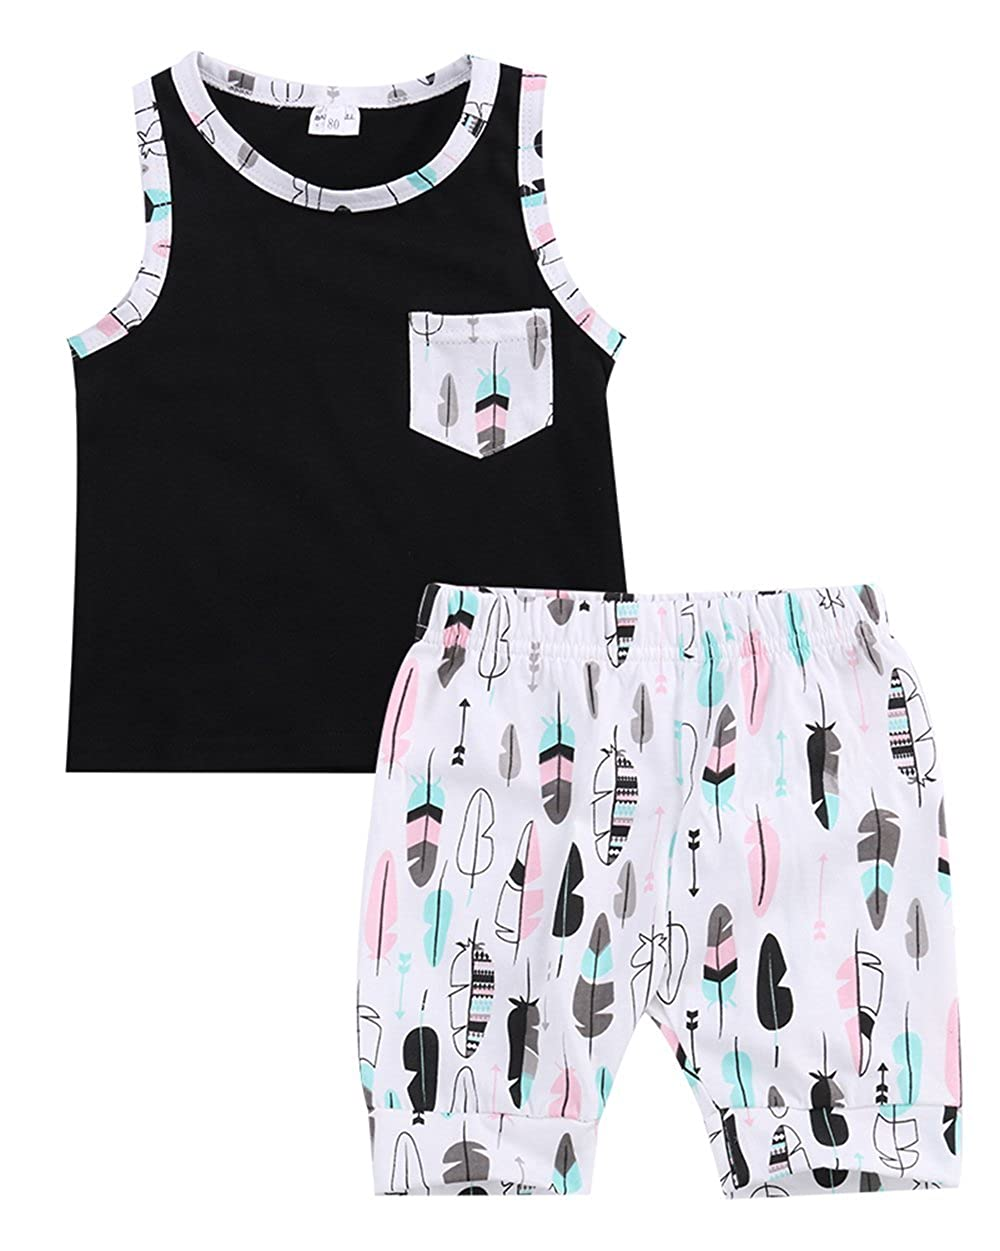 Toddler Infant Baby Boy Clothes Casual Vest Tops Pants Shorts Outfits Set 0-3Y